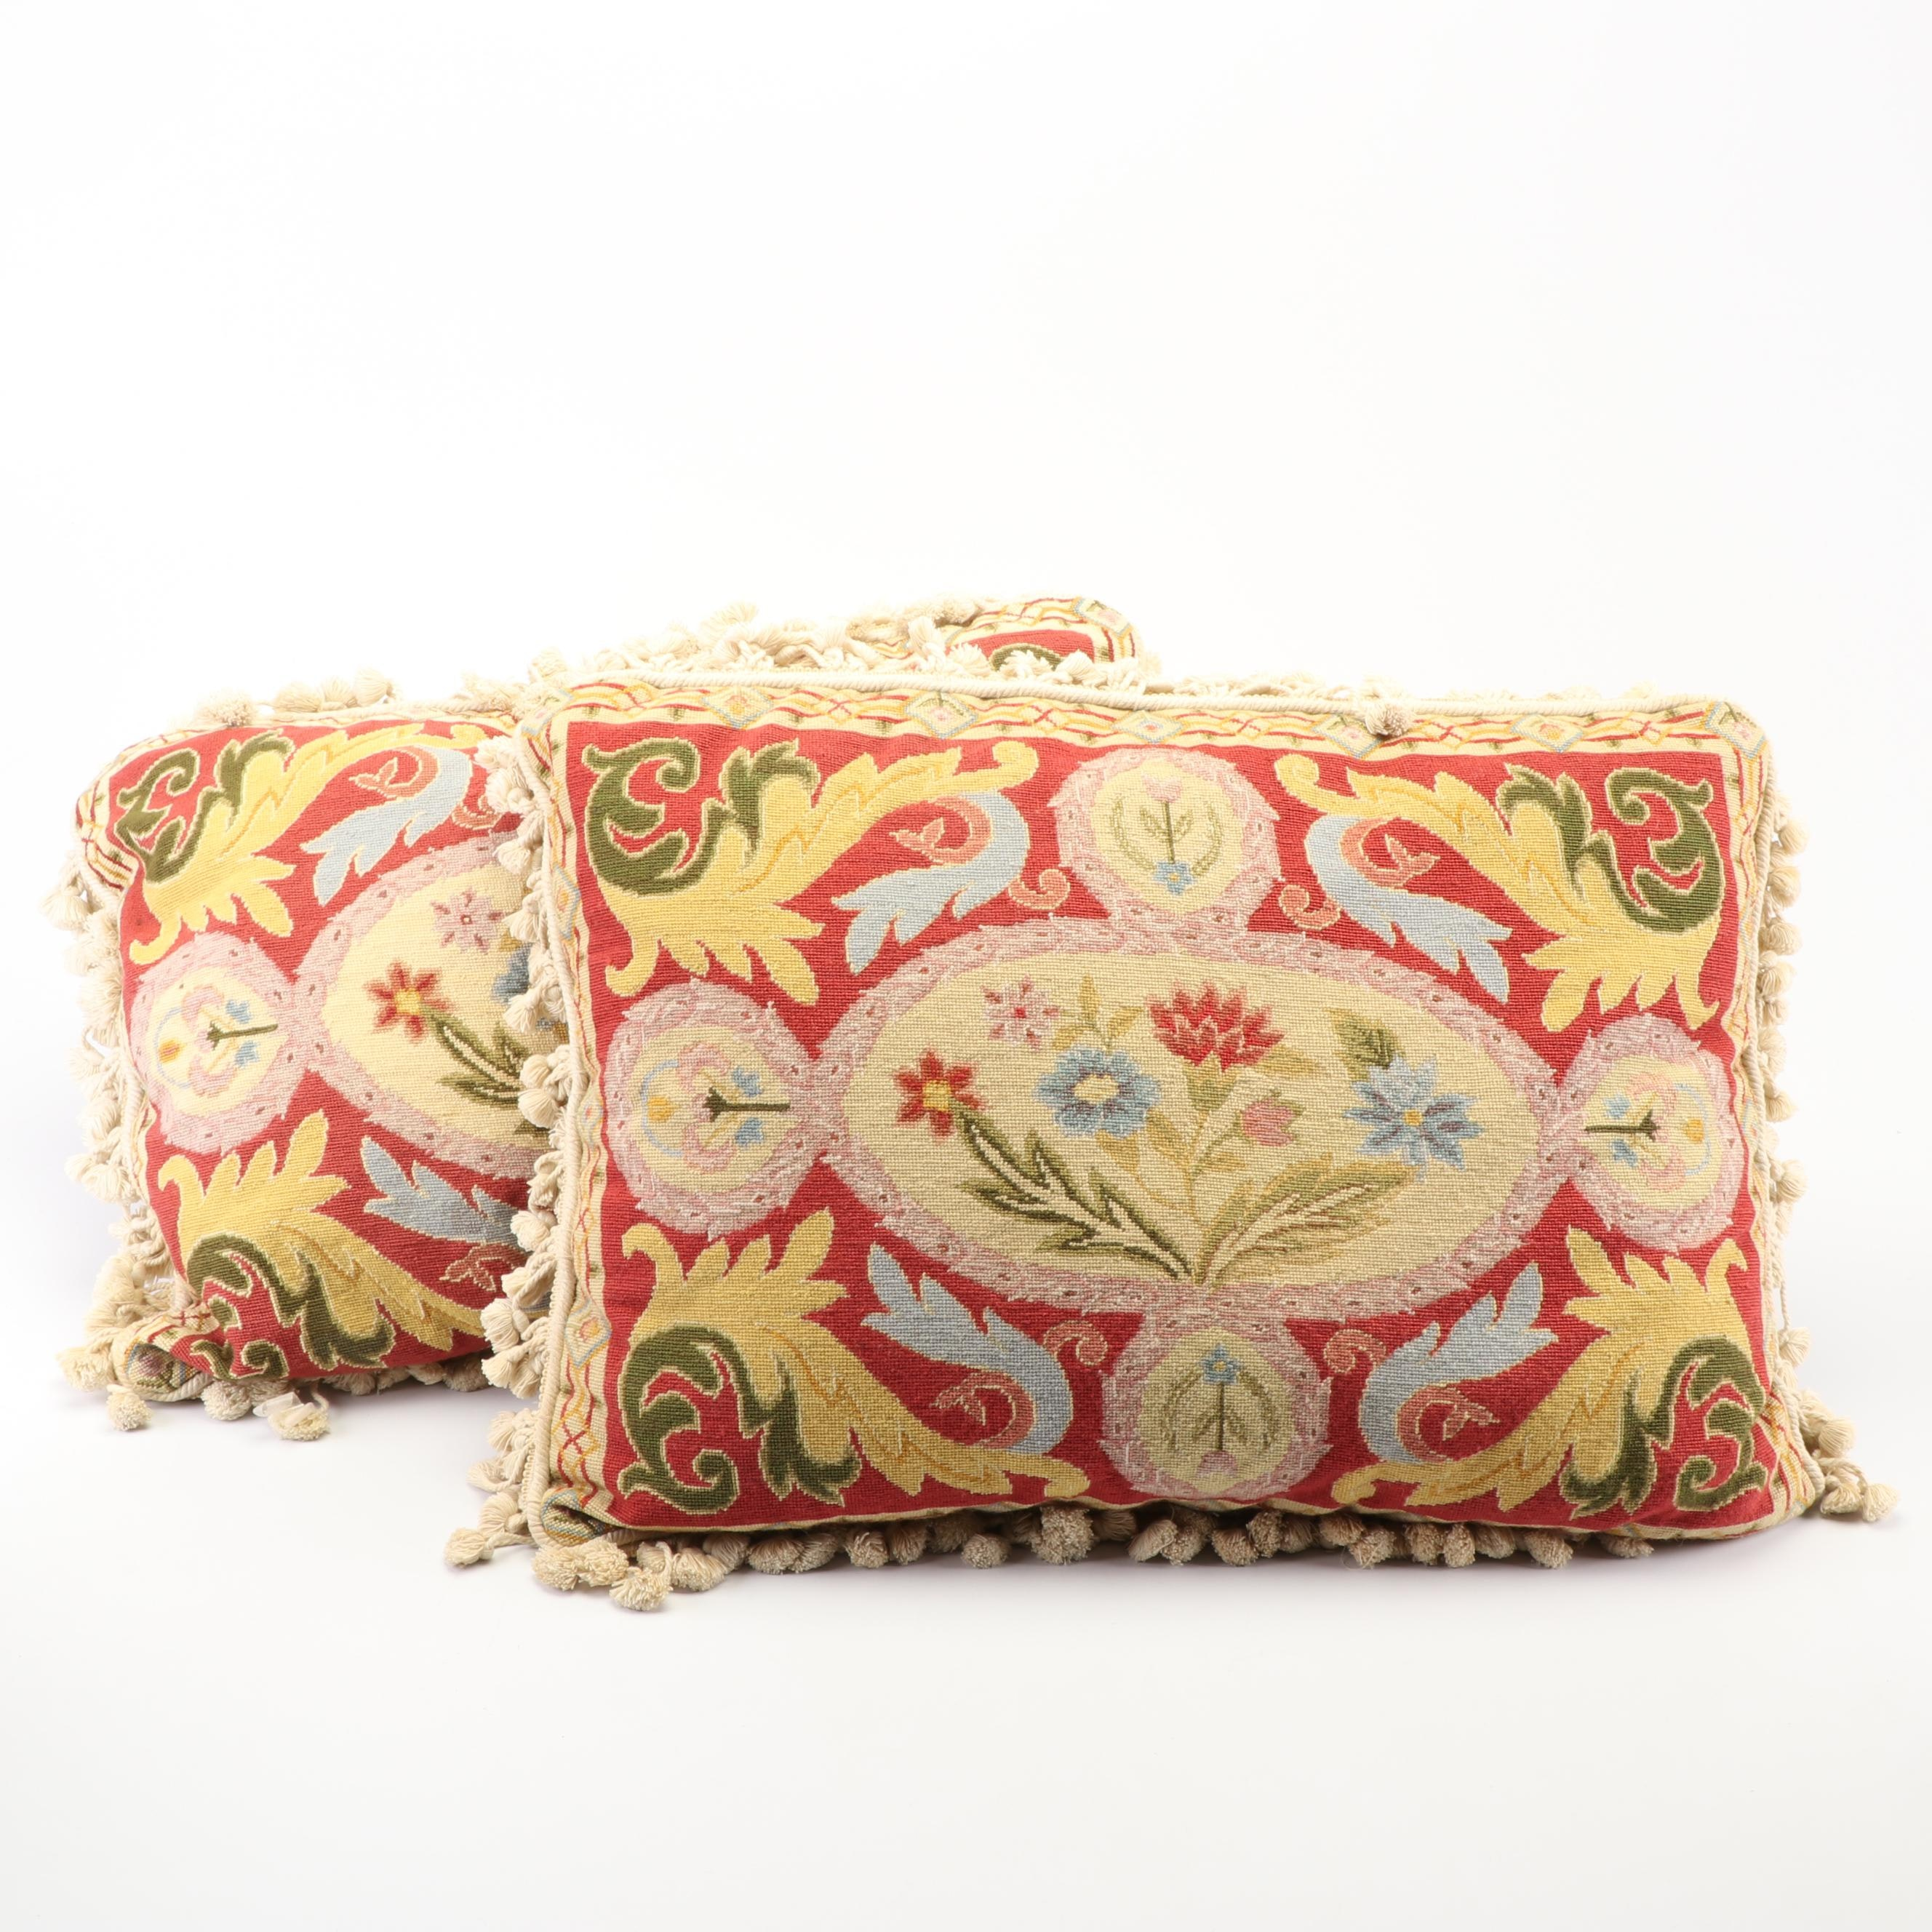 Needlepoint Floral and Foliate Accent Pillows with Tassel Trim